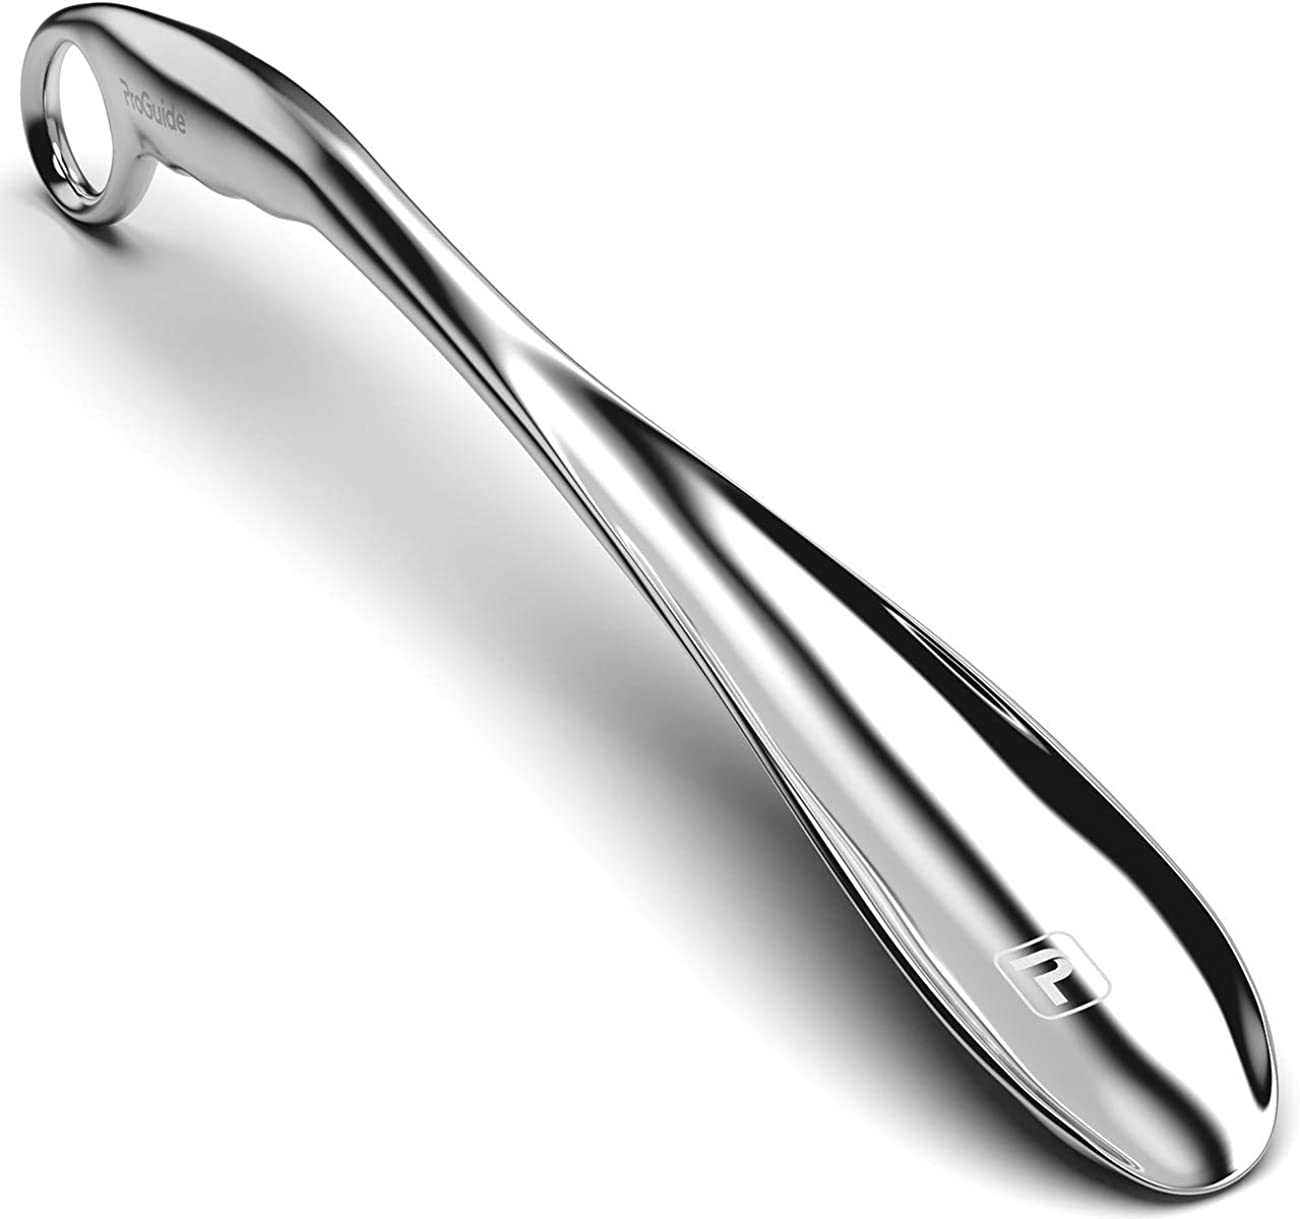 1x Portable Durable Shoehorn Professional Stainless Steel Silver Shoe Horn N/_sh